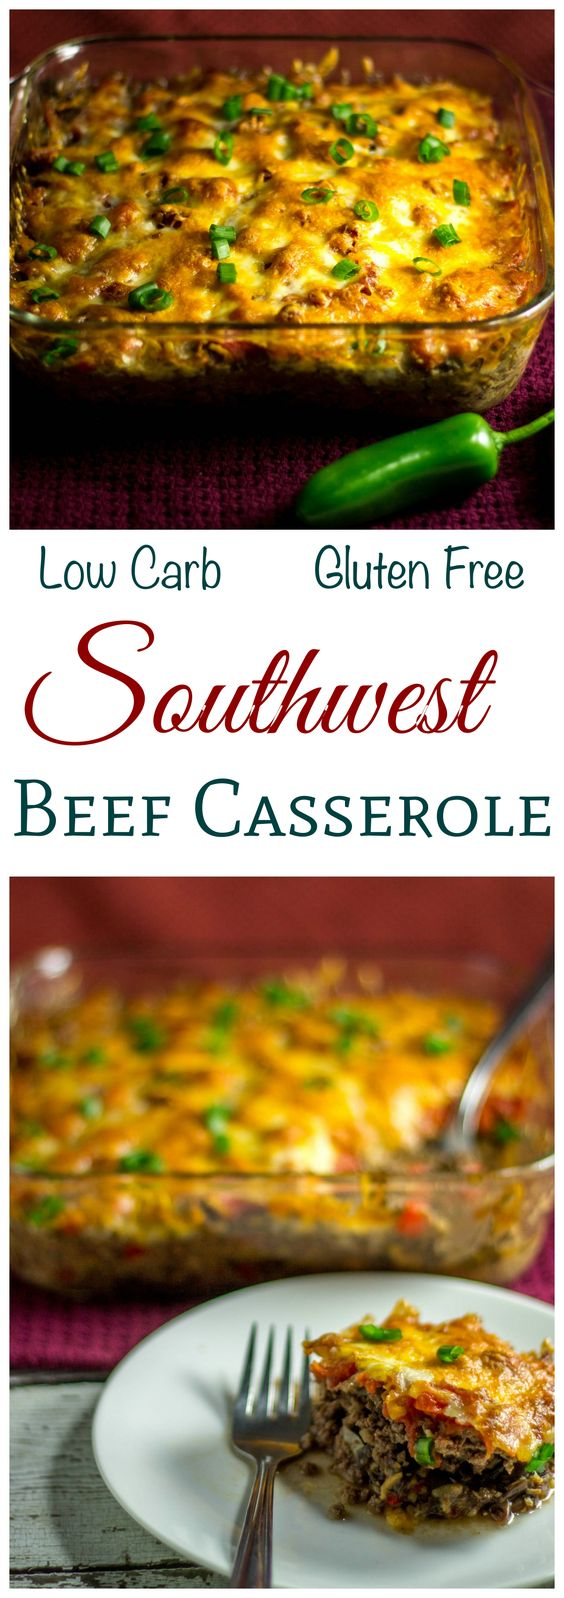 Low carb keto southwest black bean casserole